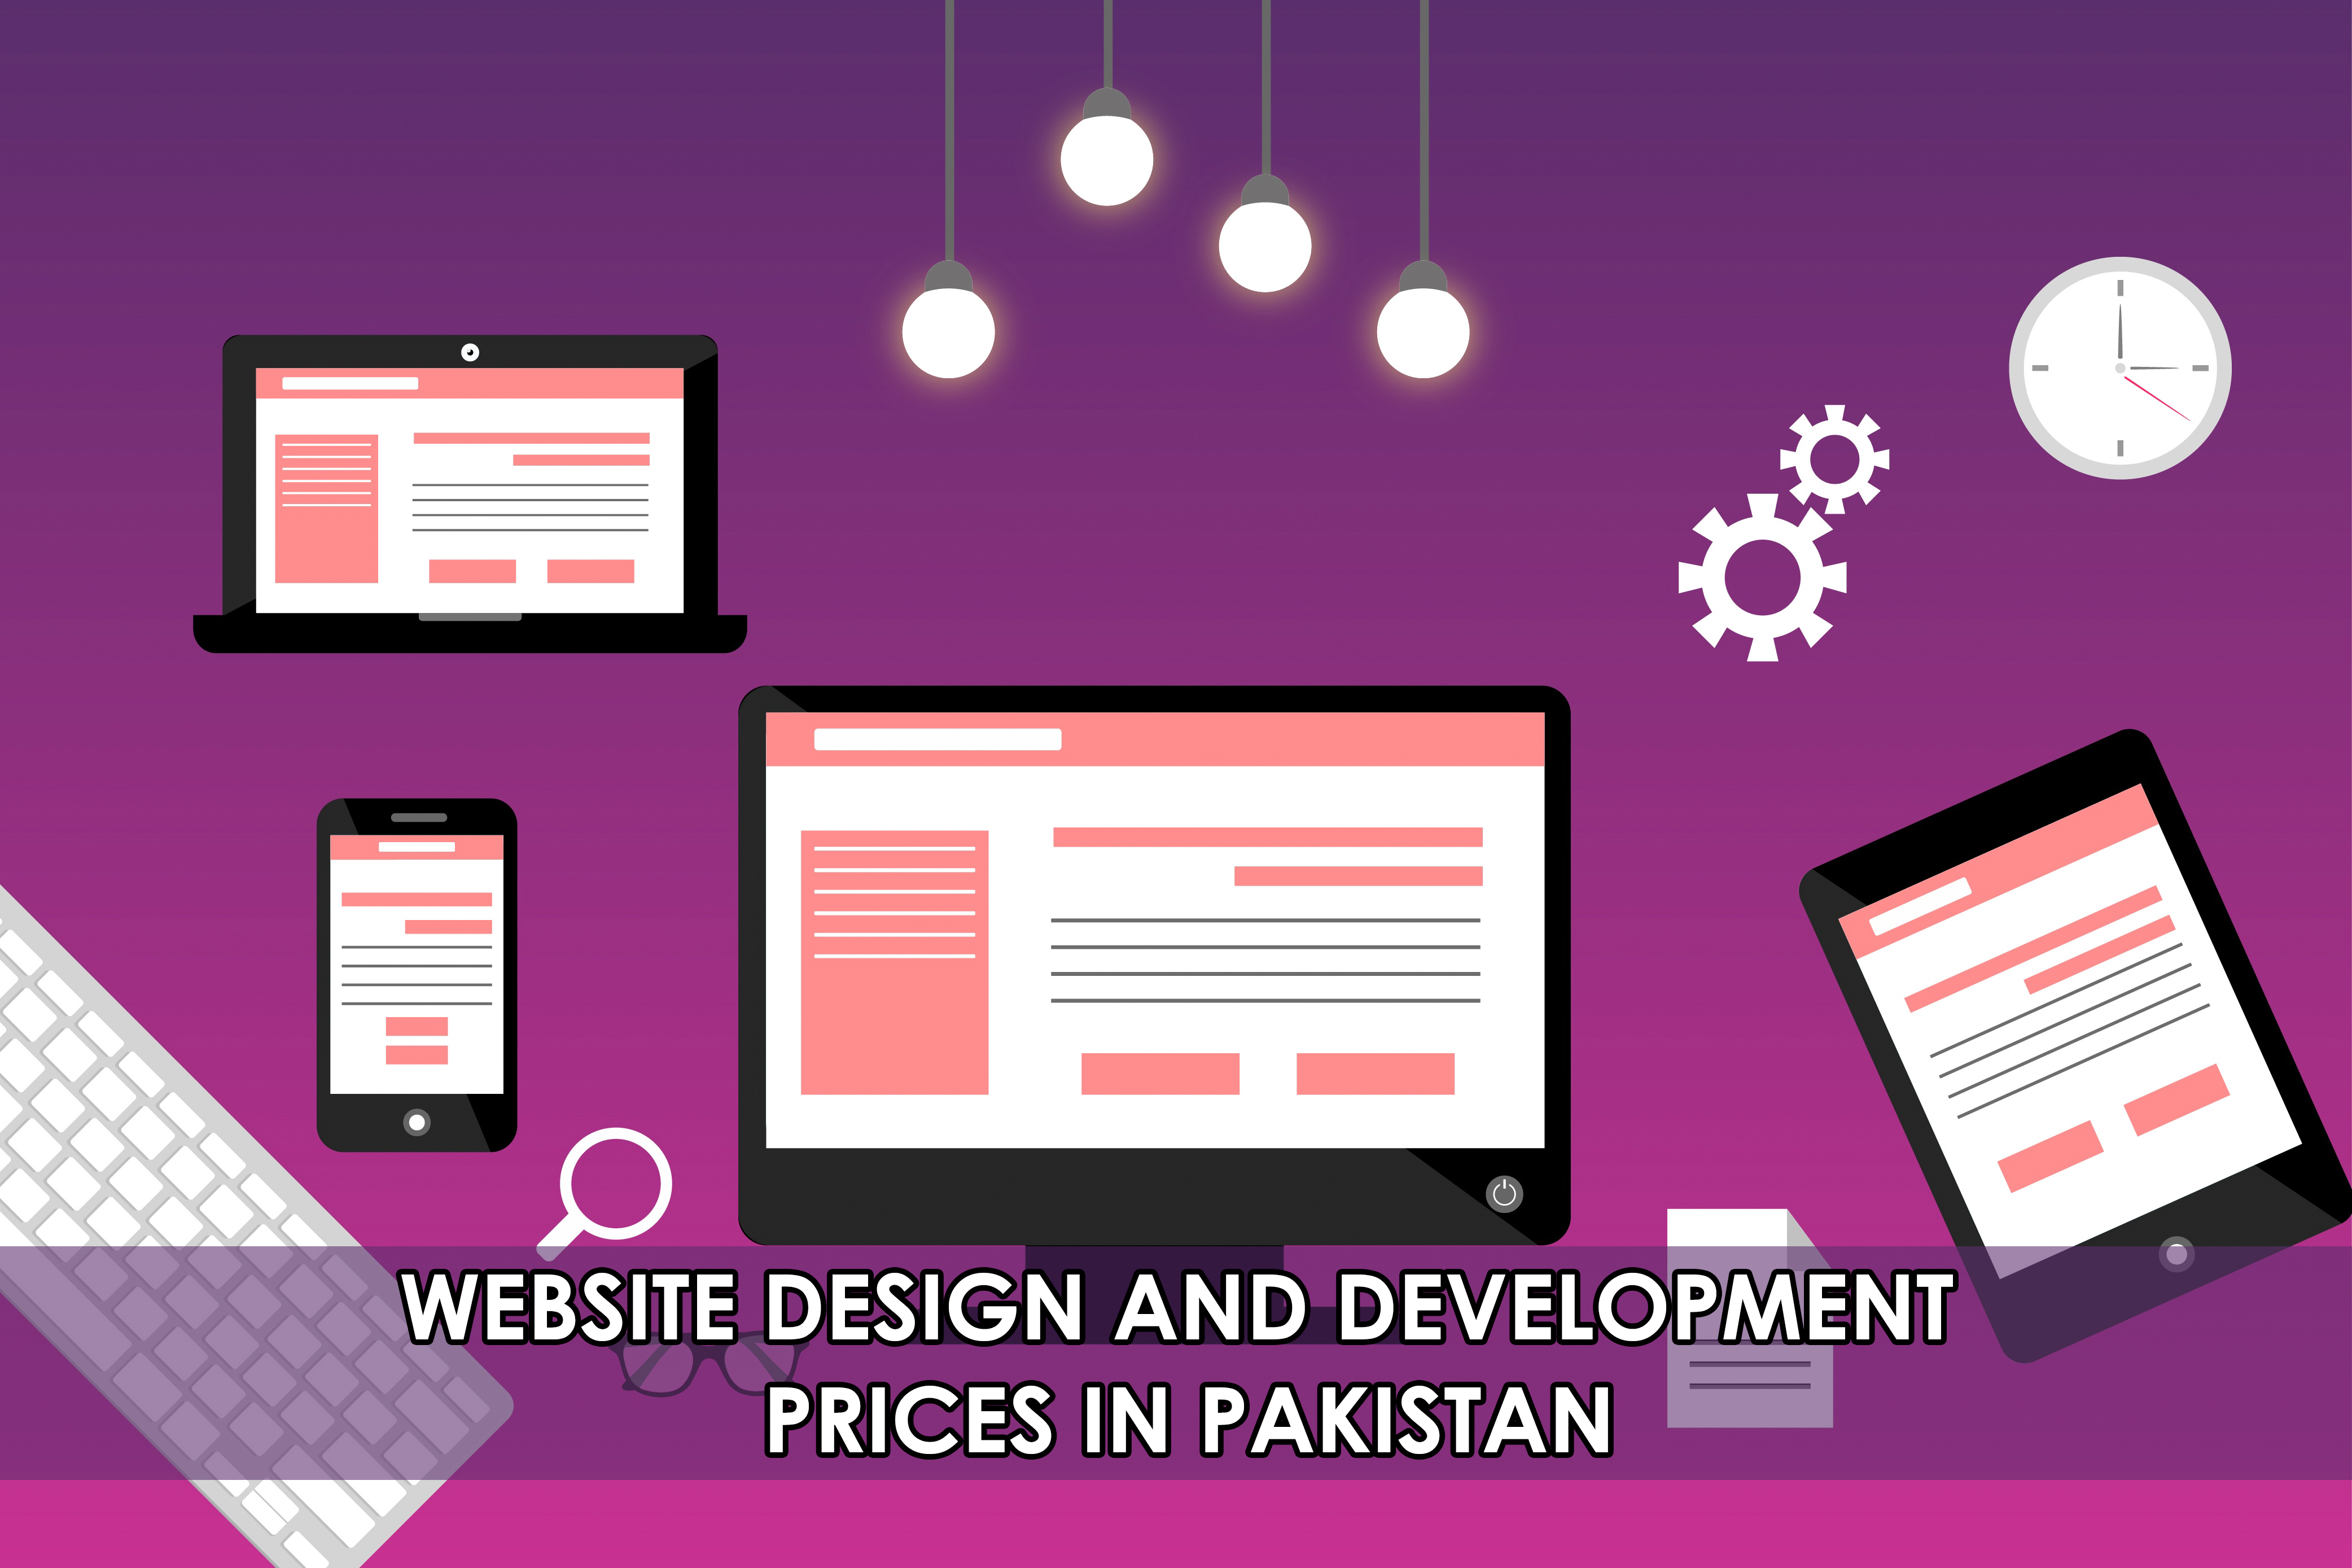 Website Design and Development Prices in Pakistan